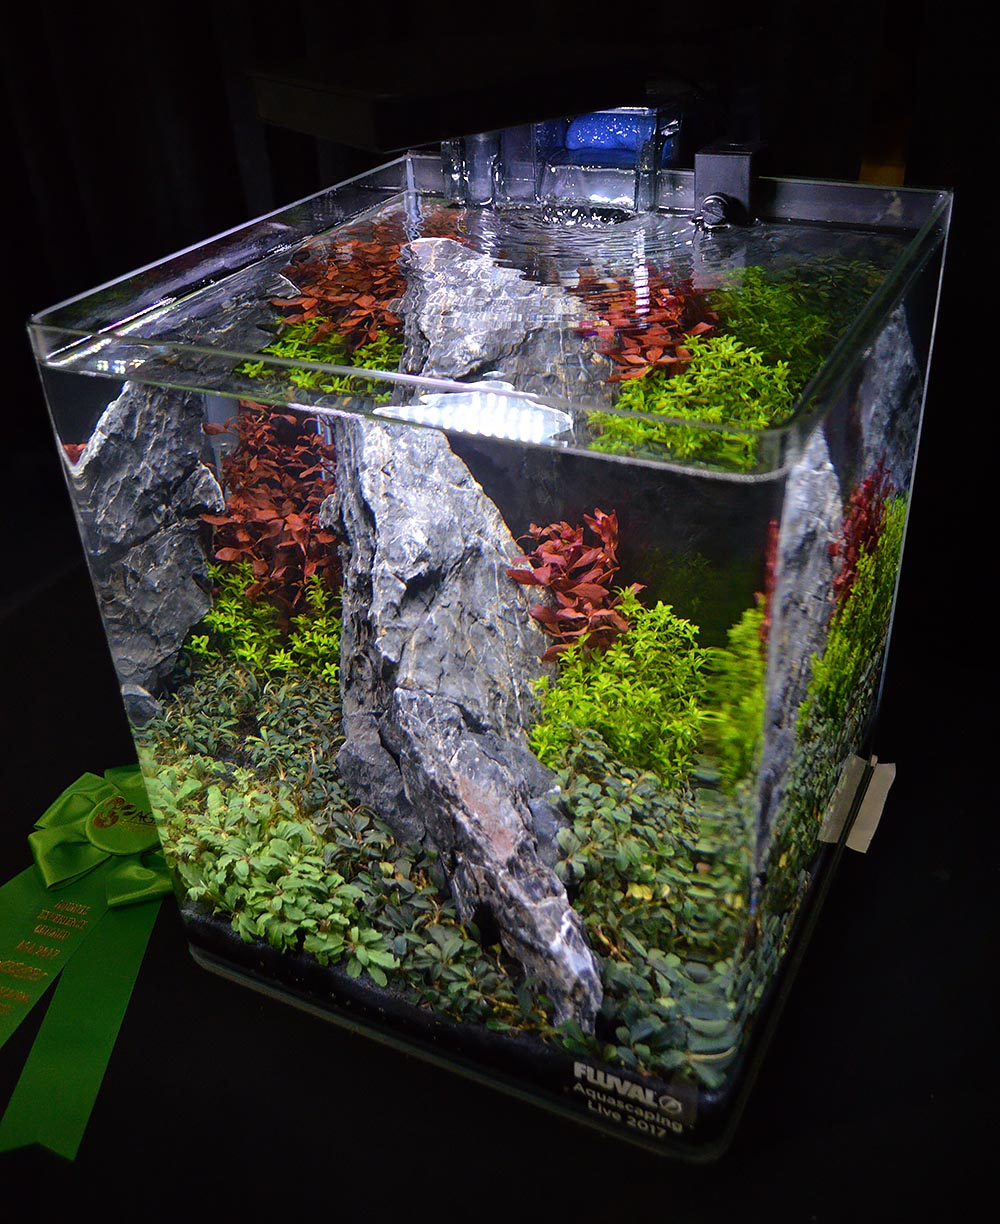 This aquascape by Hunter Koerner took 6th place.